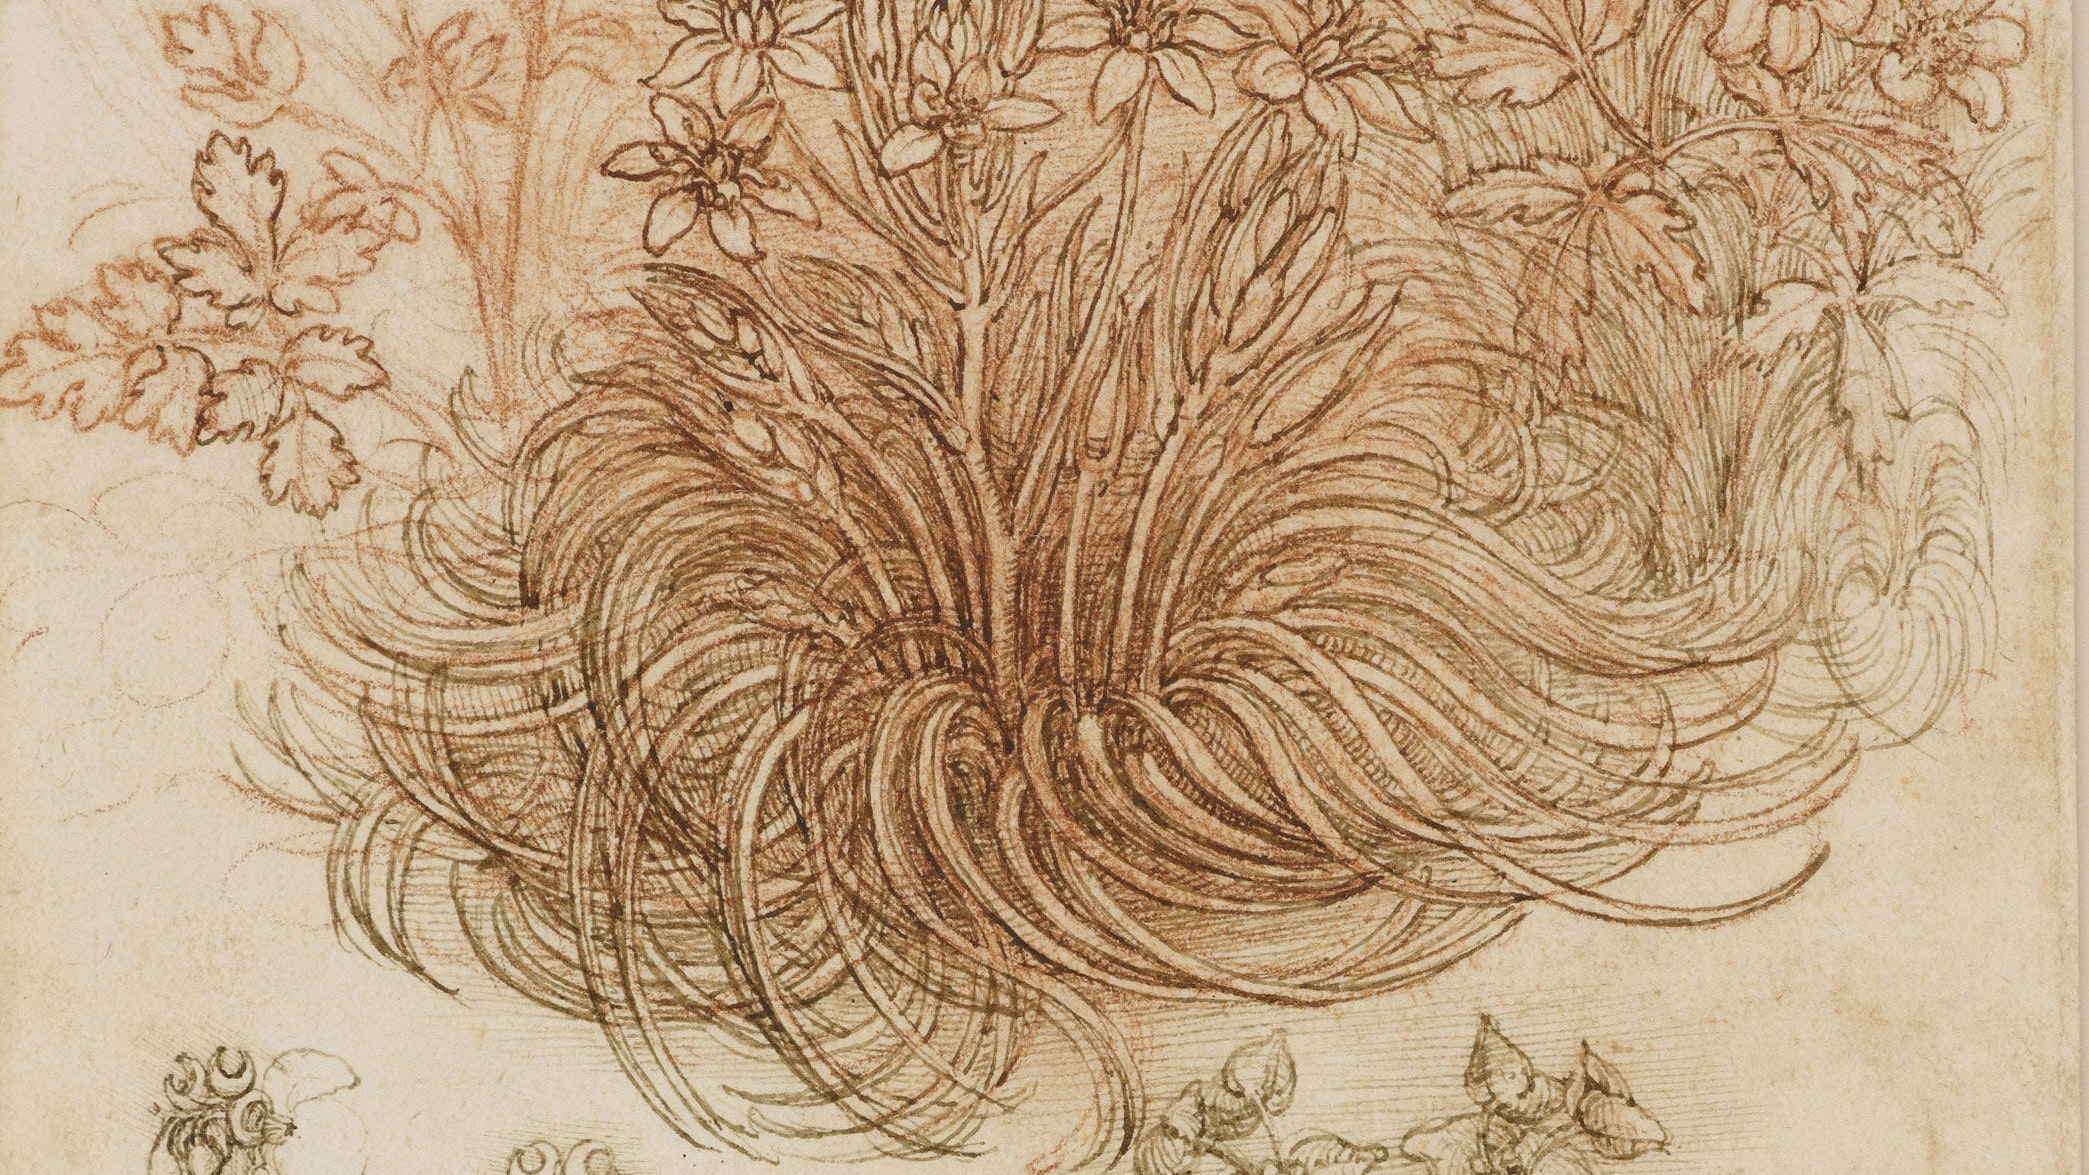 Leonardo da Vinci's undiscovered work goes on United Kingdom tour